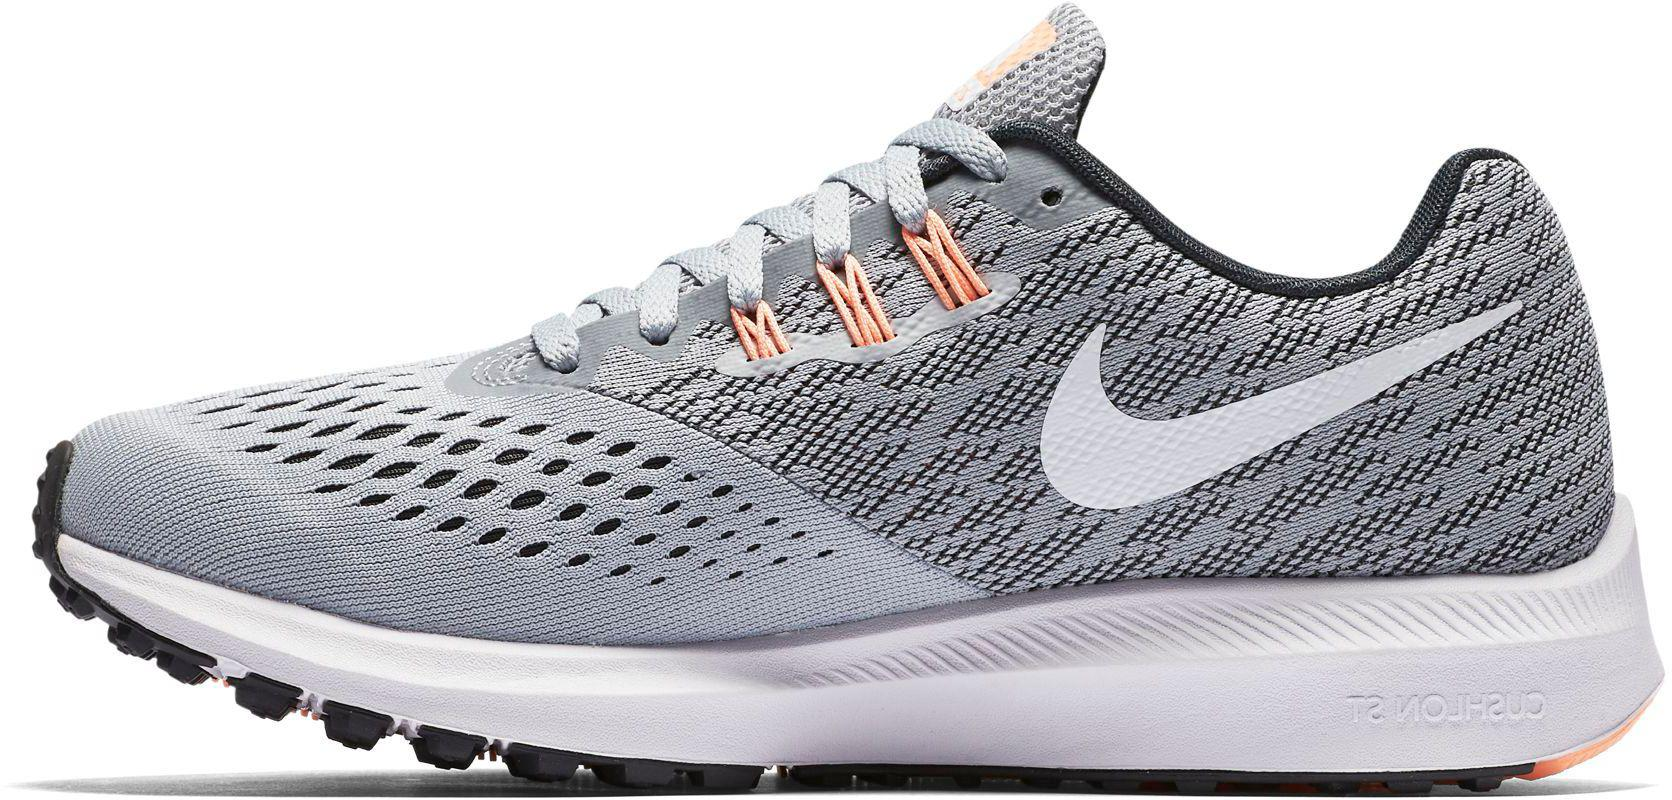 88d47ca310e Lyst - Nike Air Zoom Winflo 4 Running Shoes in Gray